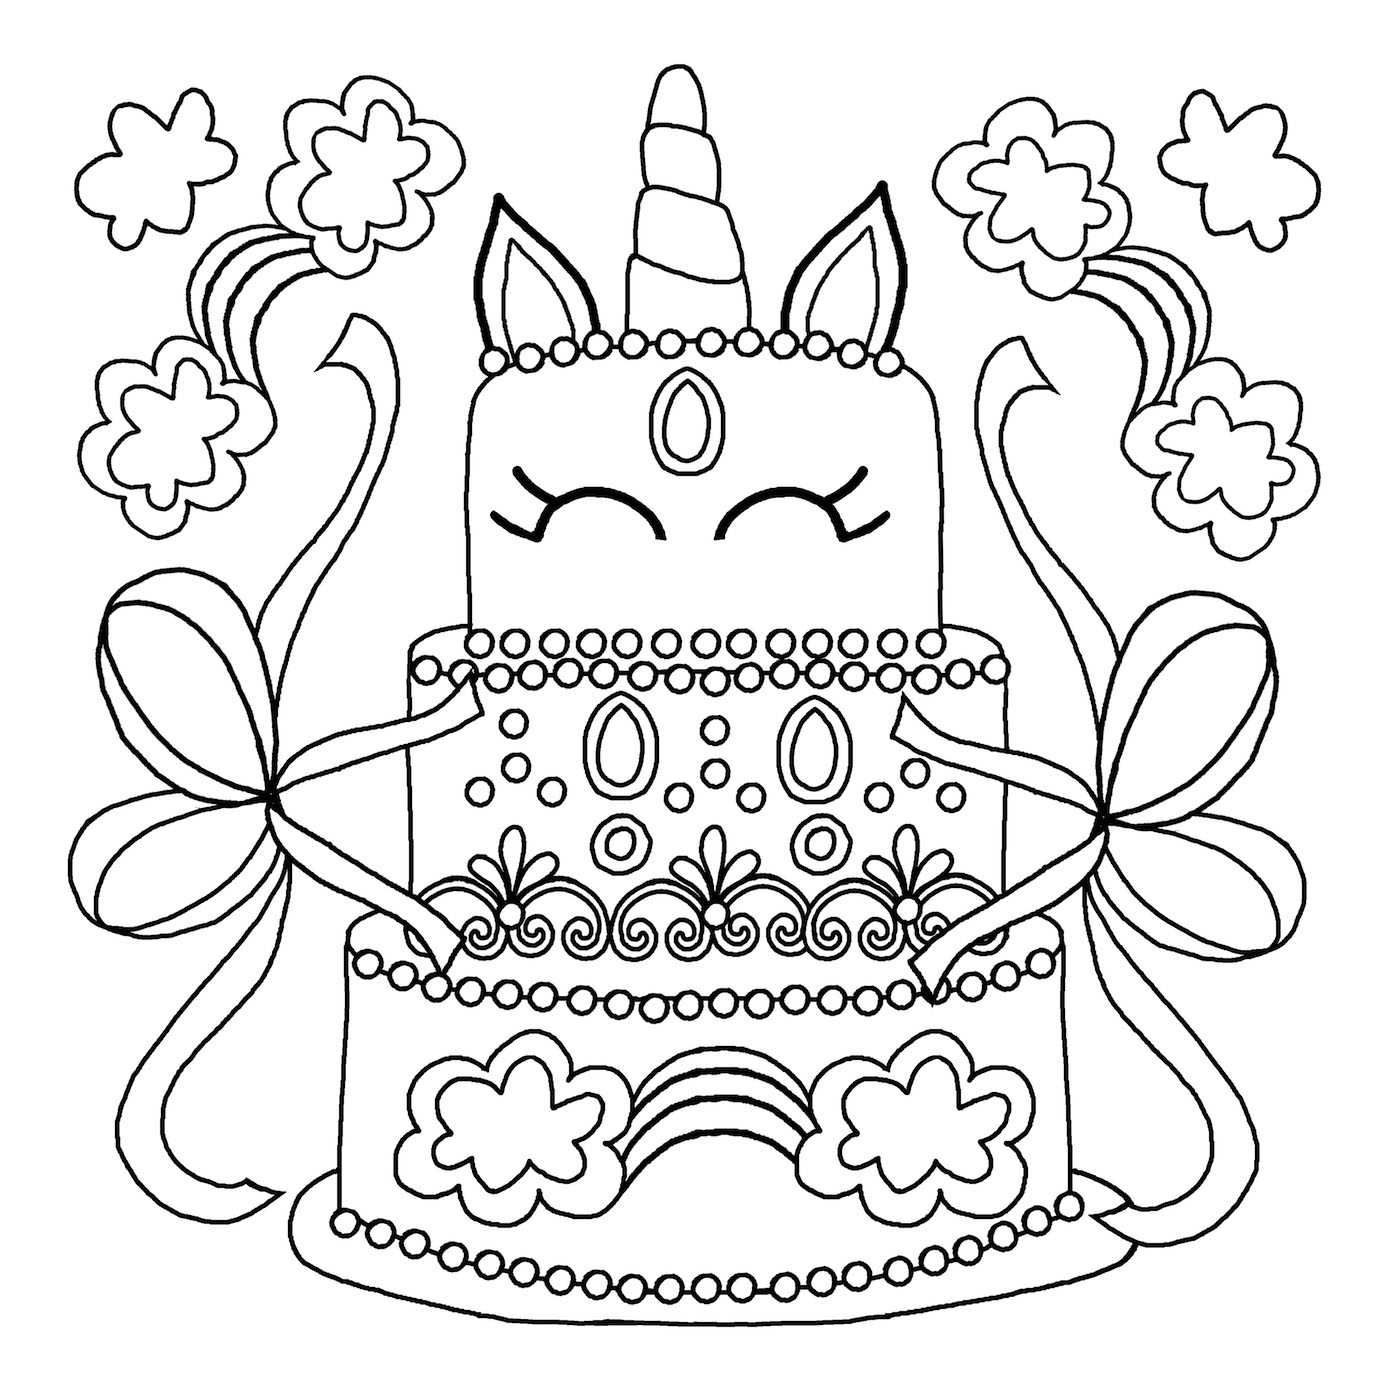 Best Colouring Images For Kids In 2019 Fun Stuff Mermaid Coloring Pages Unicorn Coloring Pages Christmas Coloring Pages